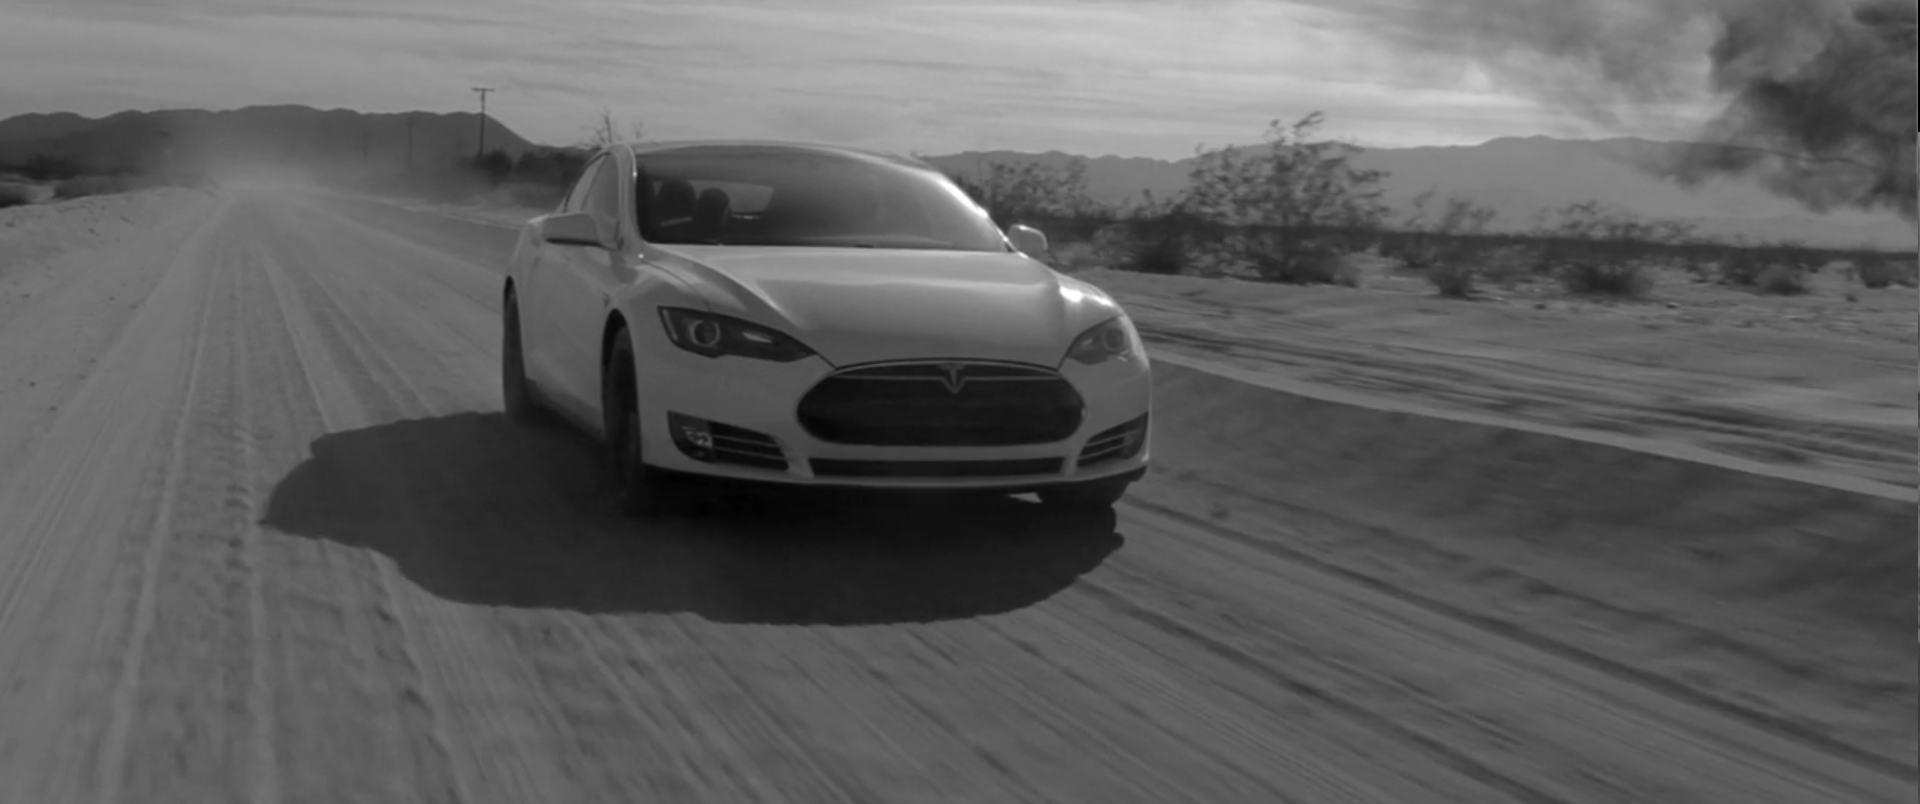 tesla not a dream ad